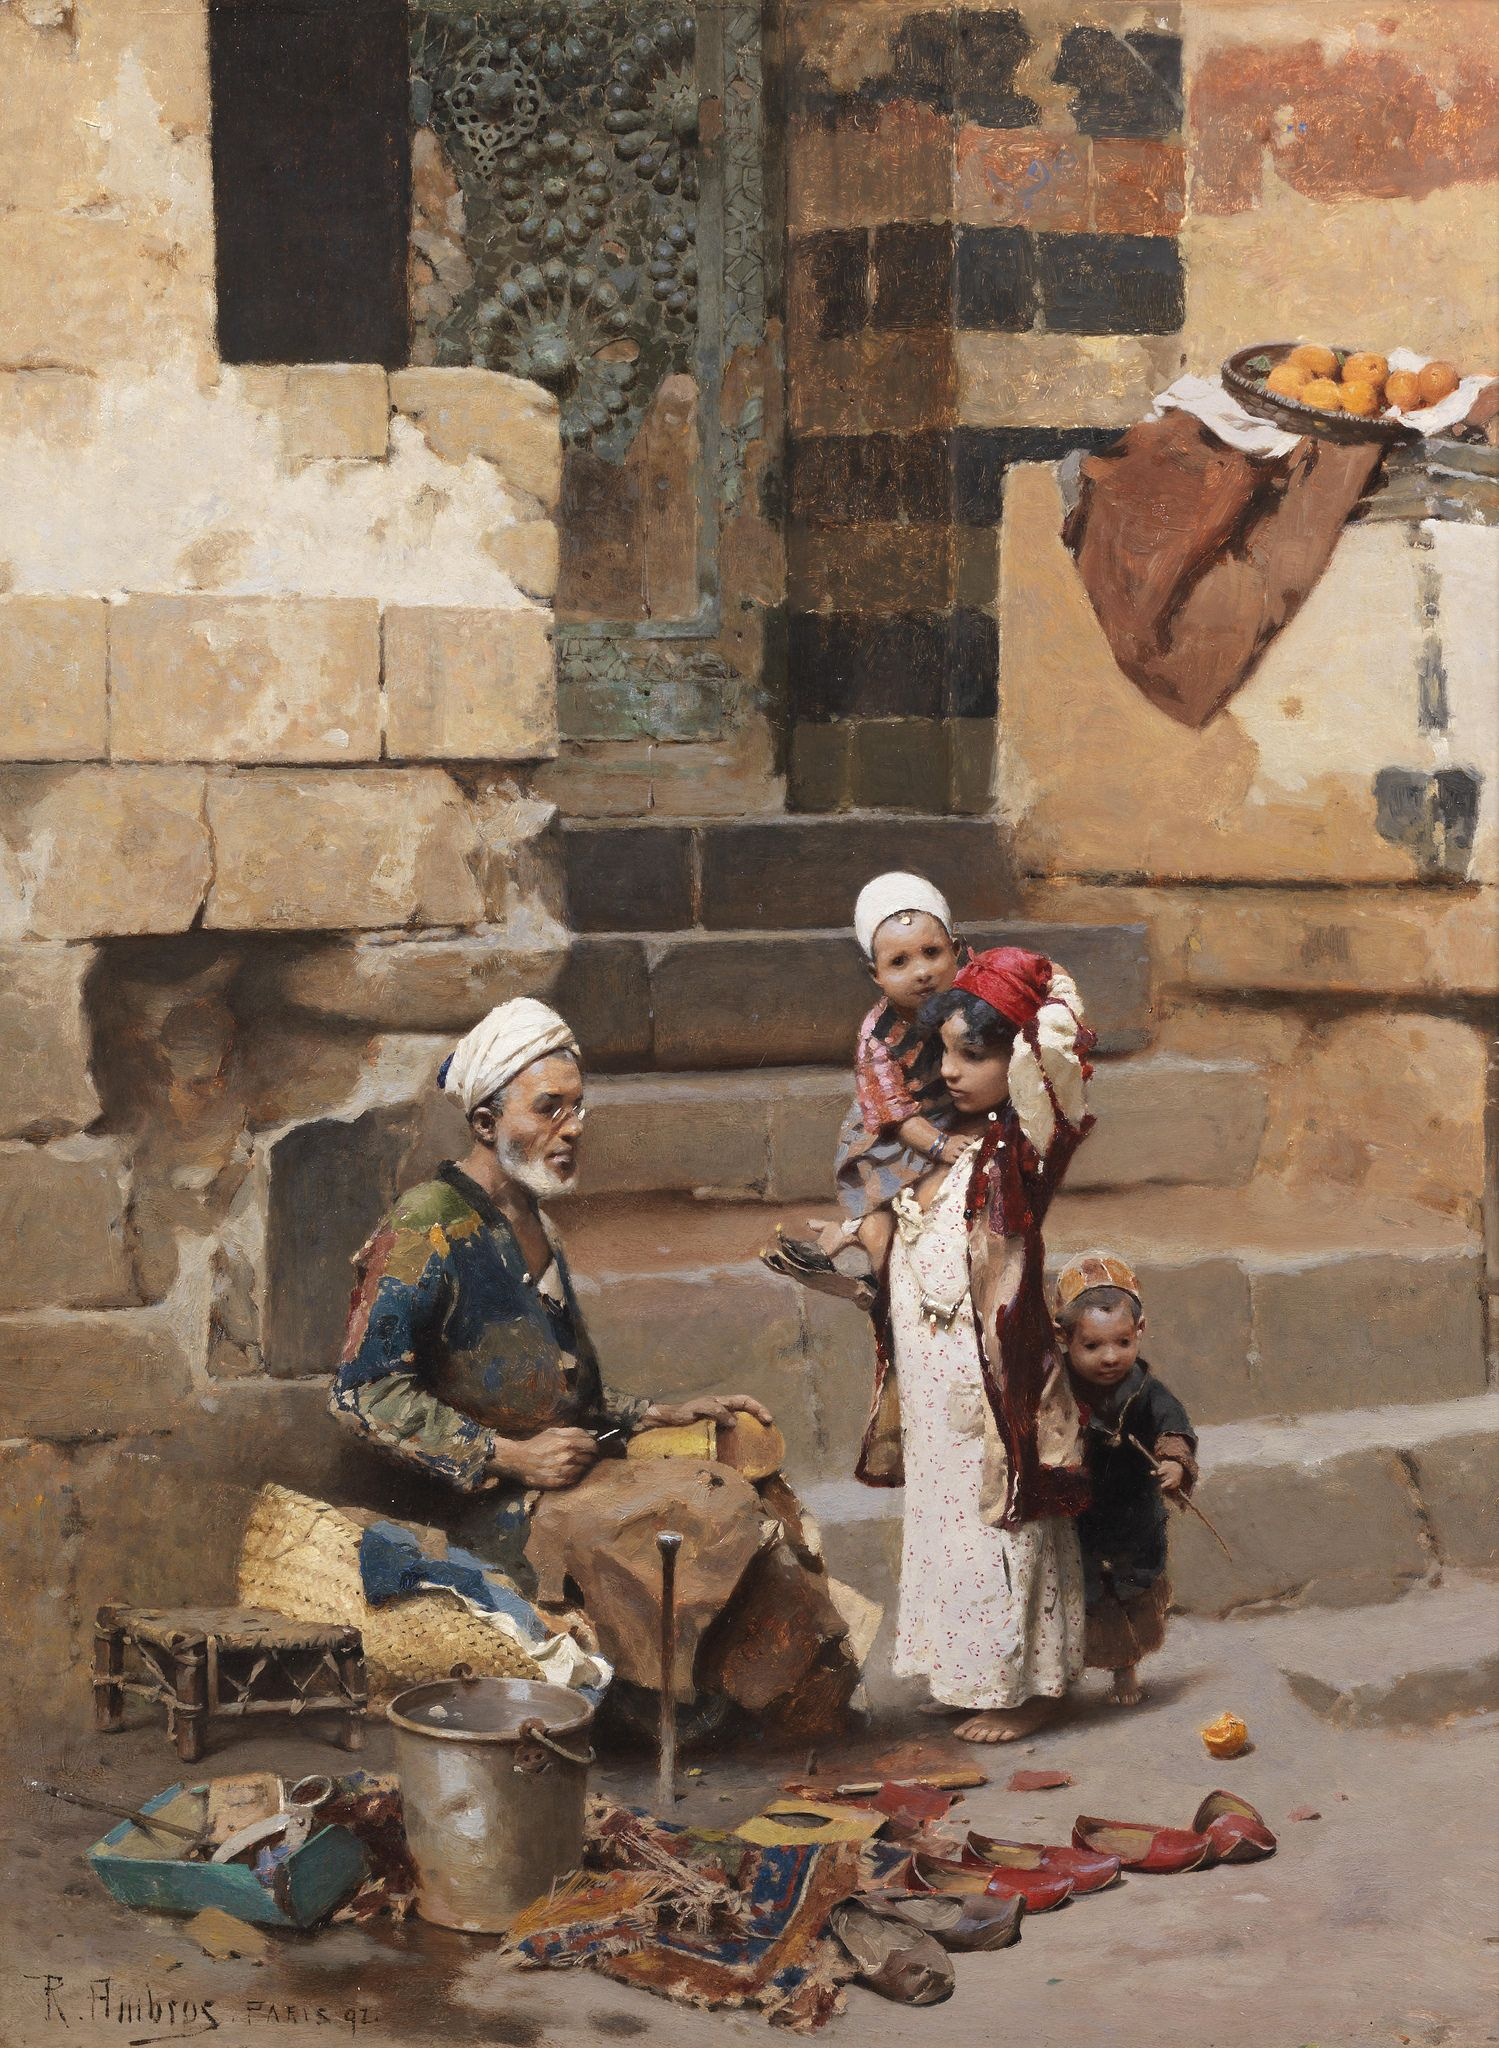 https://flic.kr/p/vvBvAk | Raphael von Ambros - The Old Shoe Maker, Cairo [1892] | Raphael von Ambros (1854 - 1895) was an Austrian painter.  [Bonham's - Oil on panel]